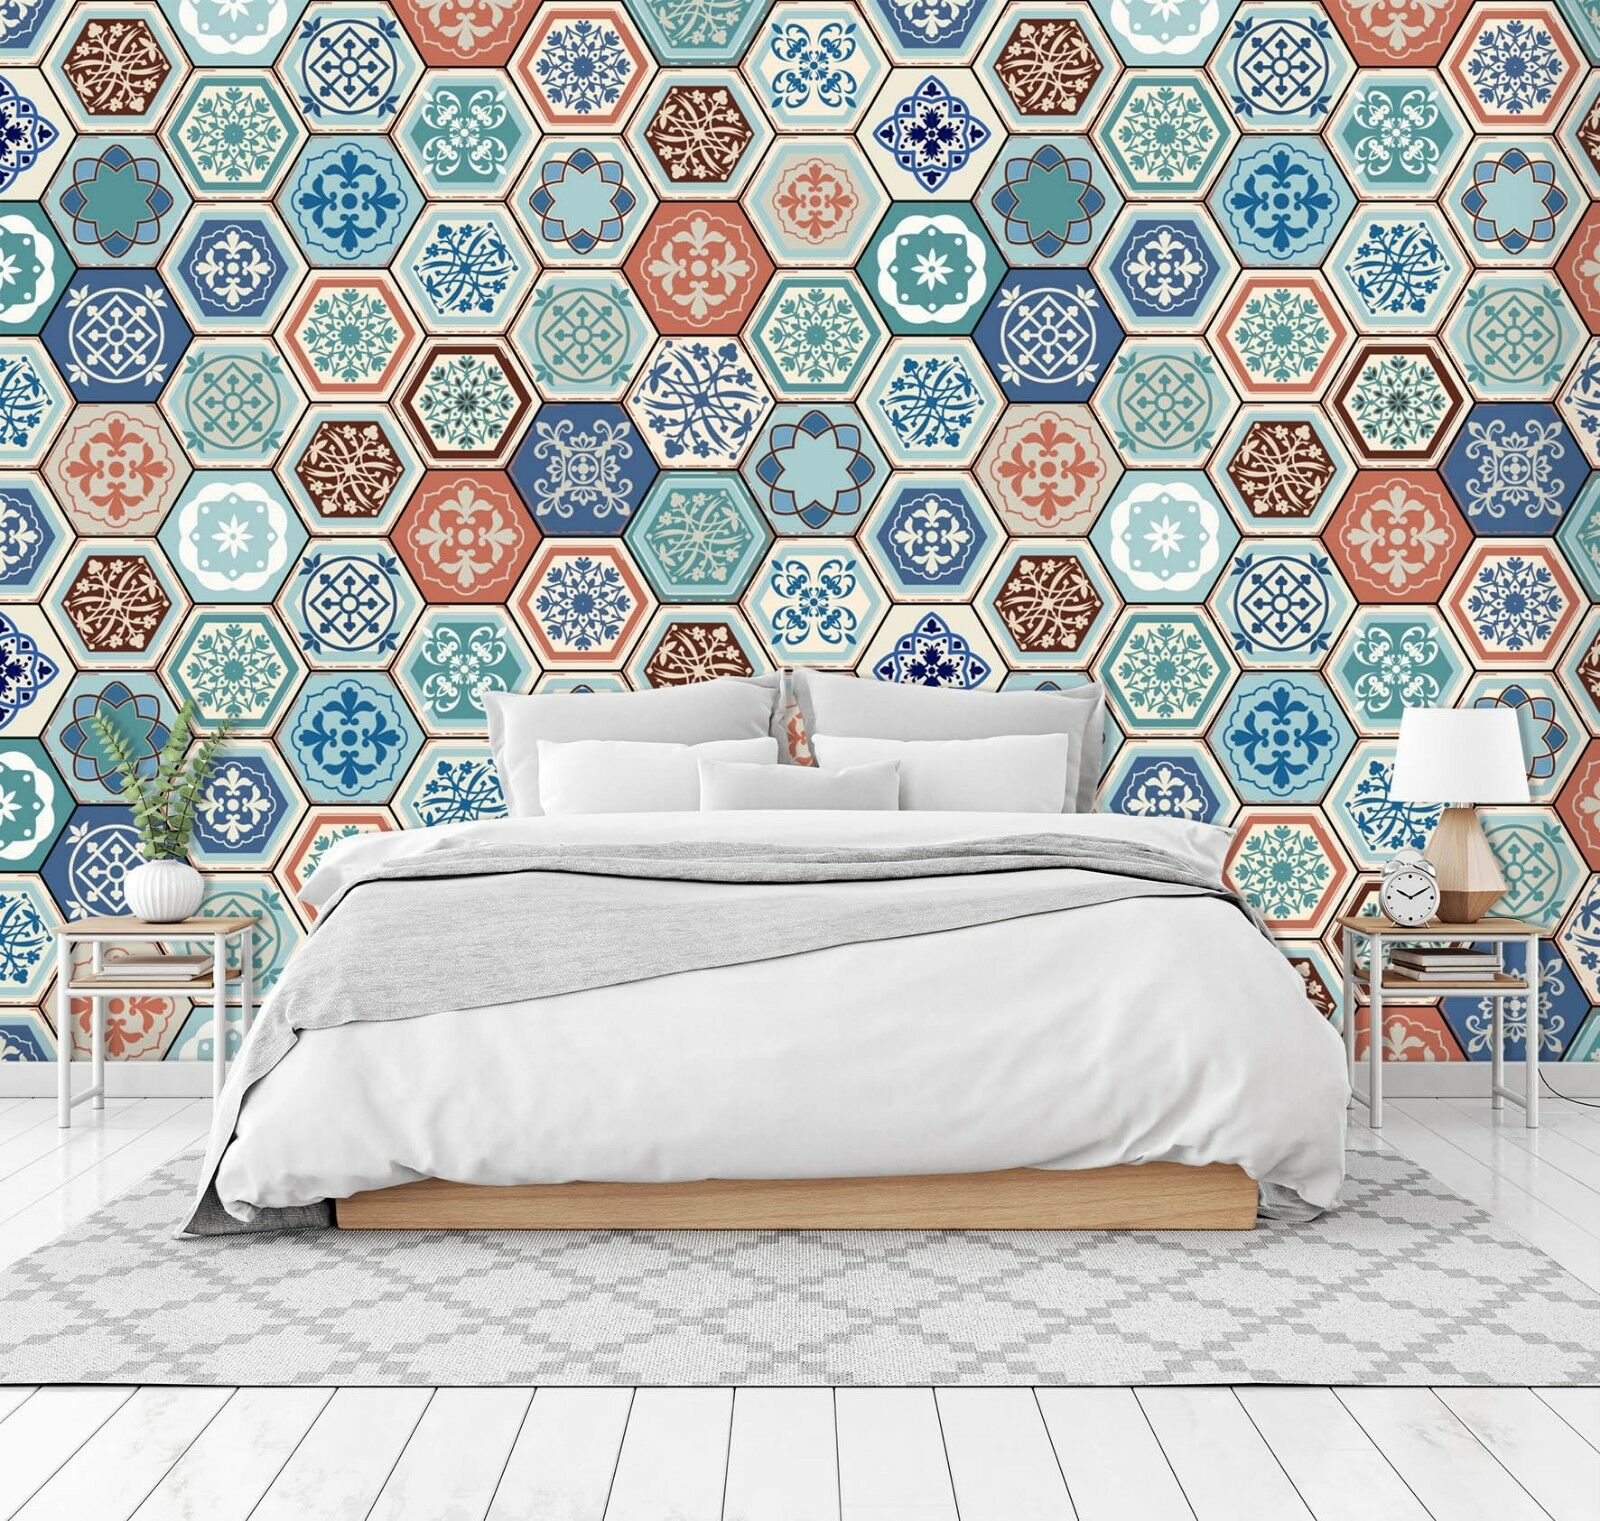 3D Pattern Blau 7018 Wall Paper Print Wall Decal Deco Indoor Wall Murals US